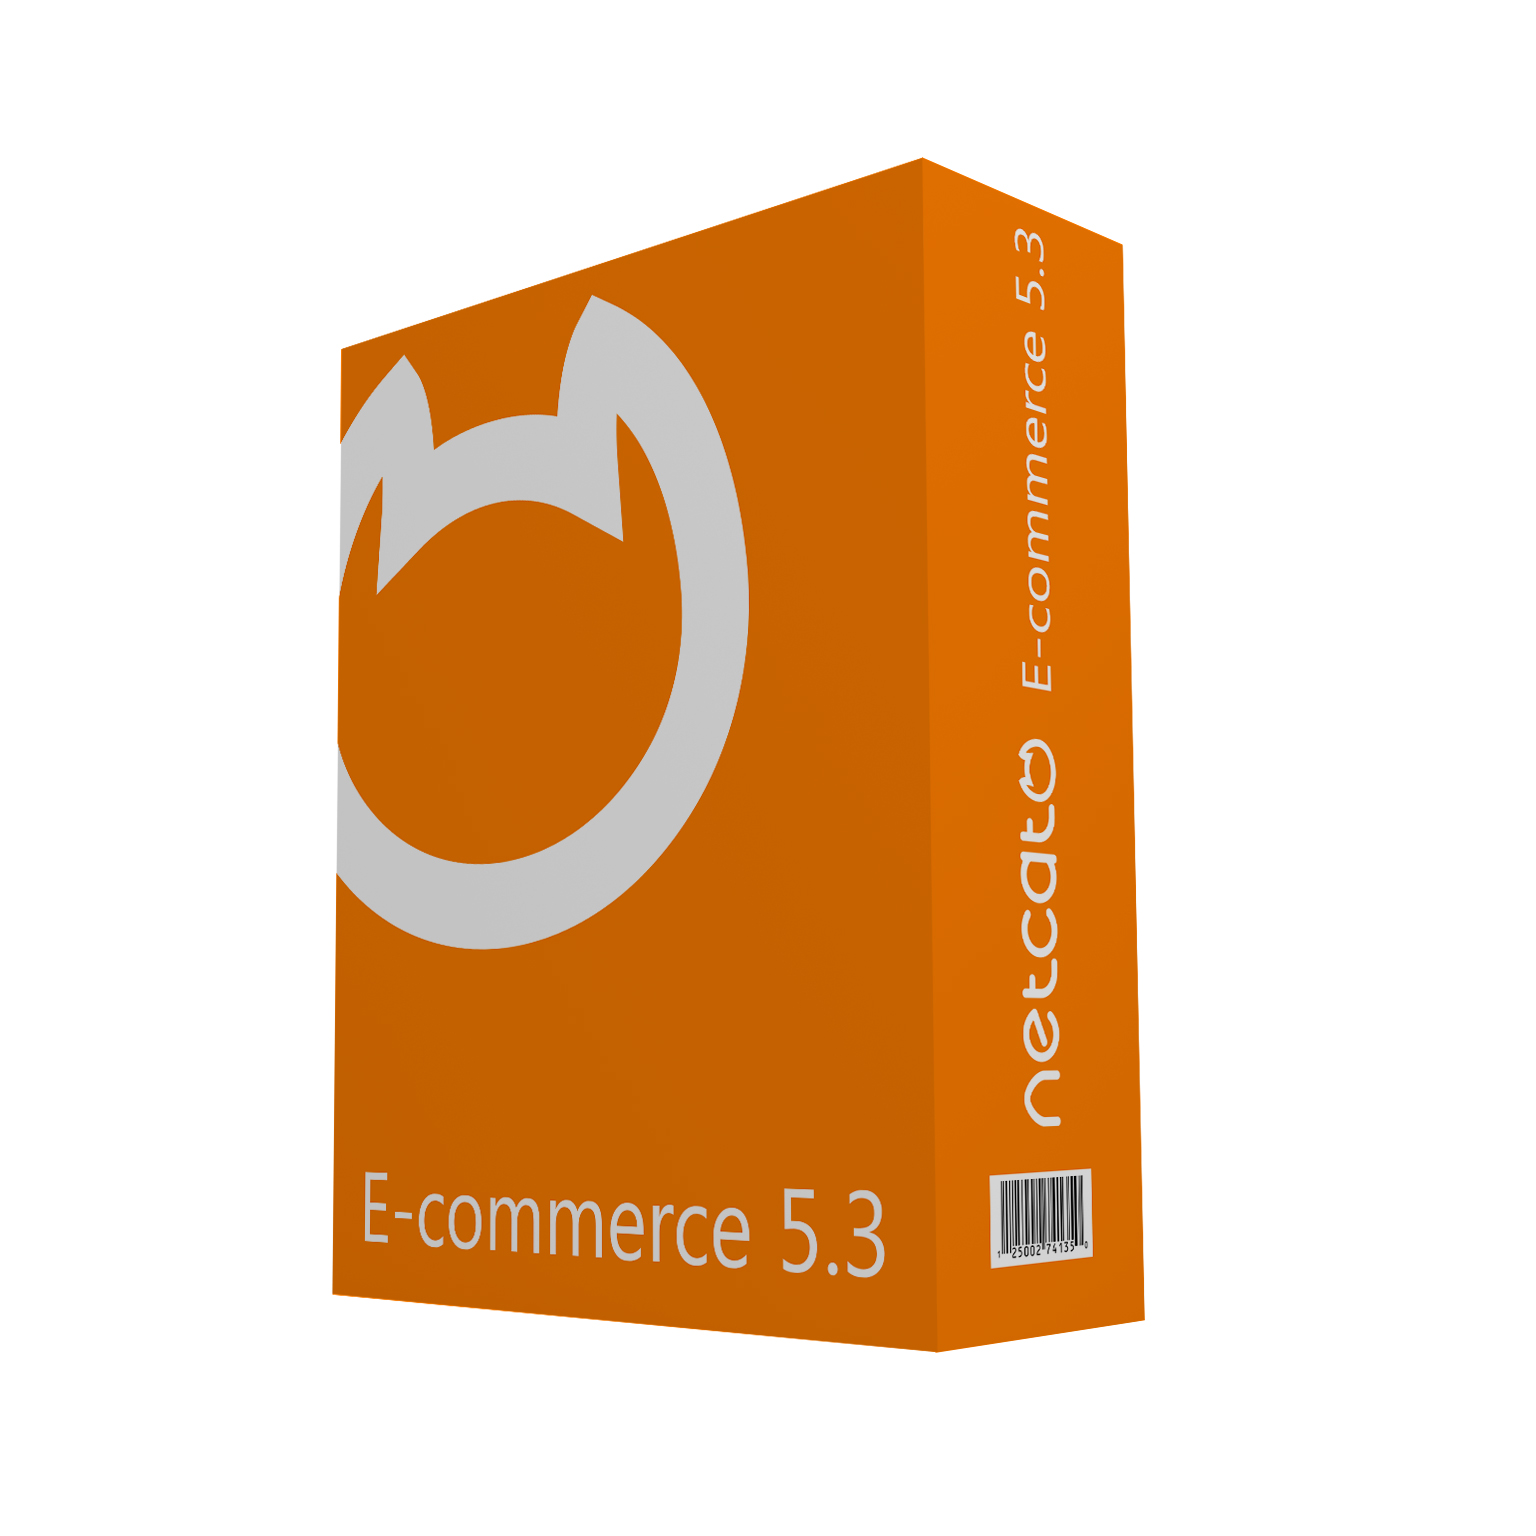 NetCat E-commerce, 5.3